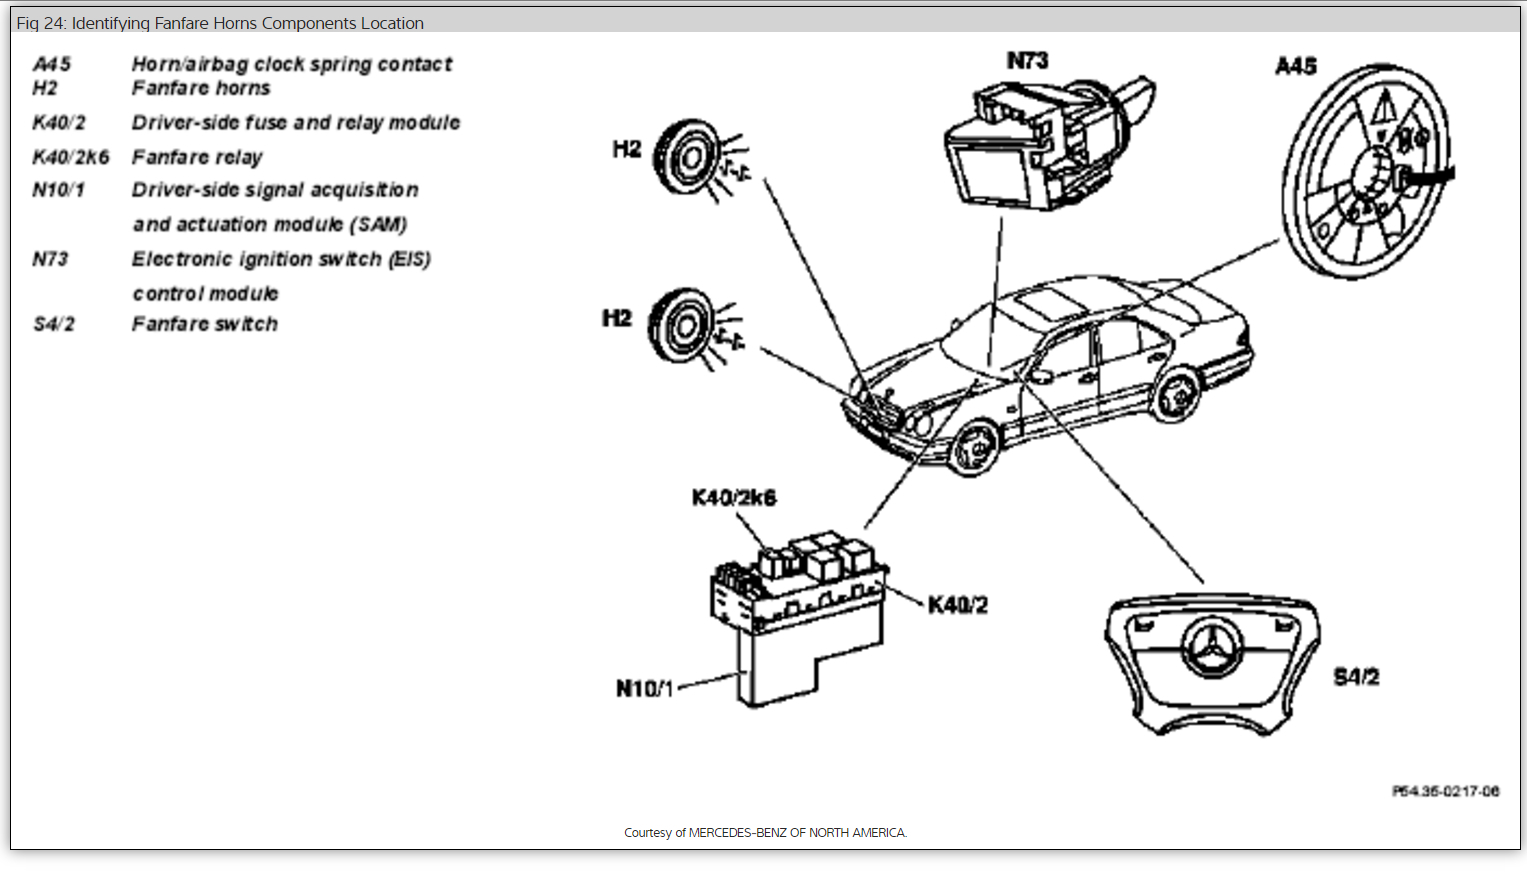 2000 mercedes s430 fuse box location   36 wiring diagram